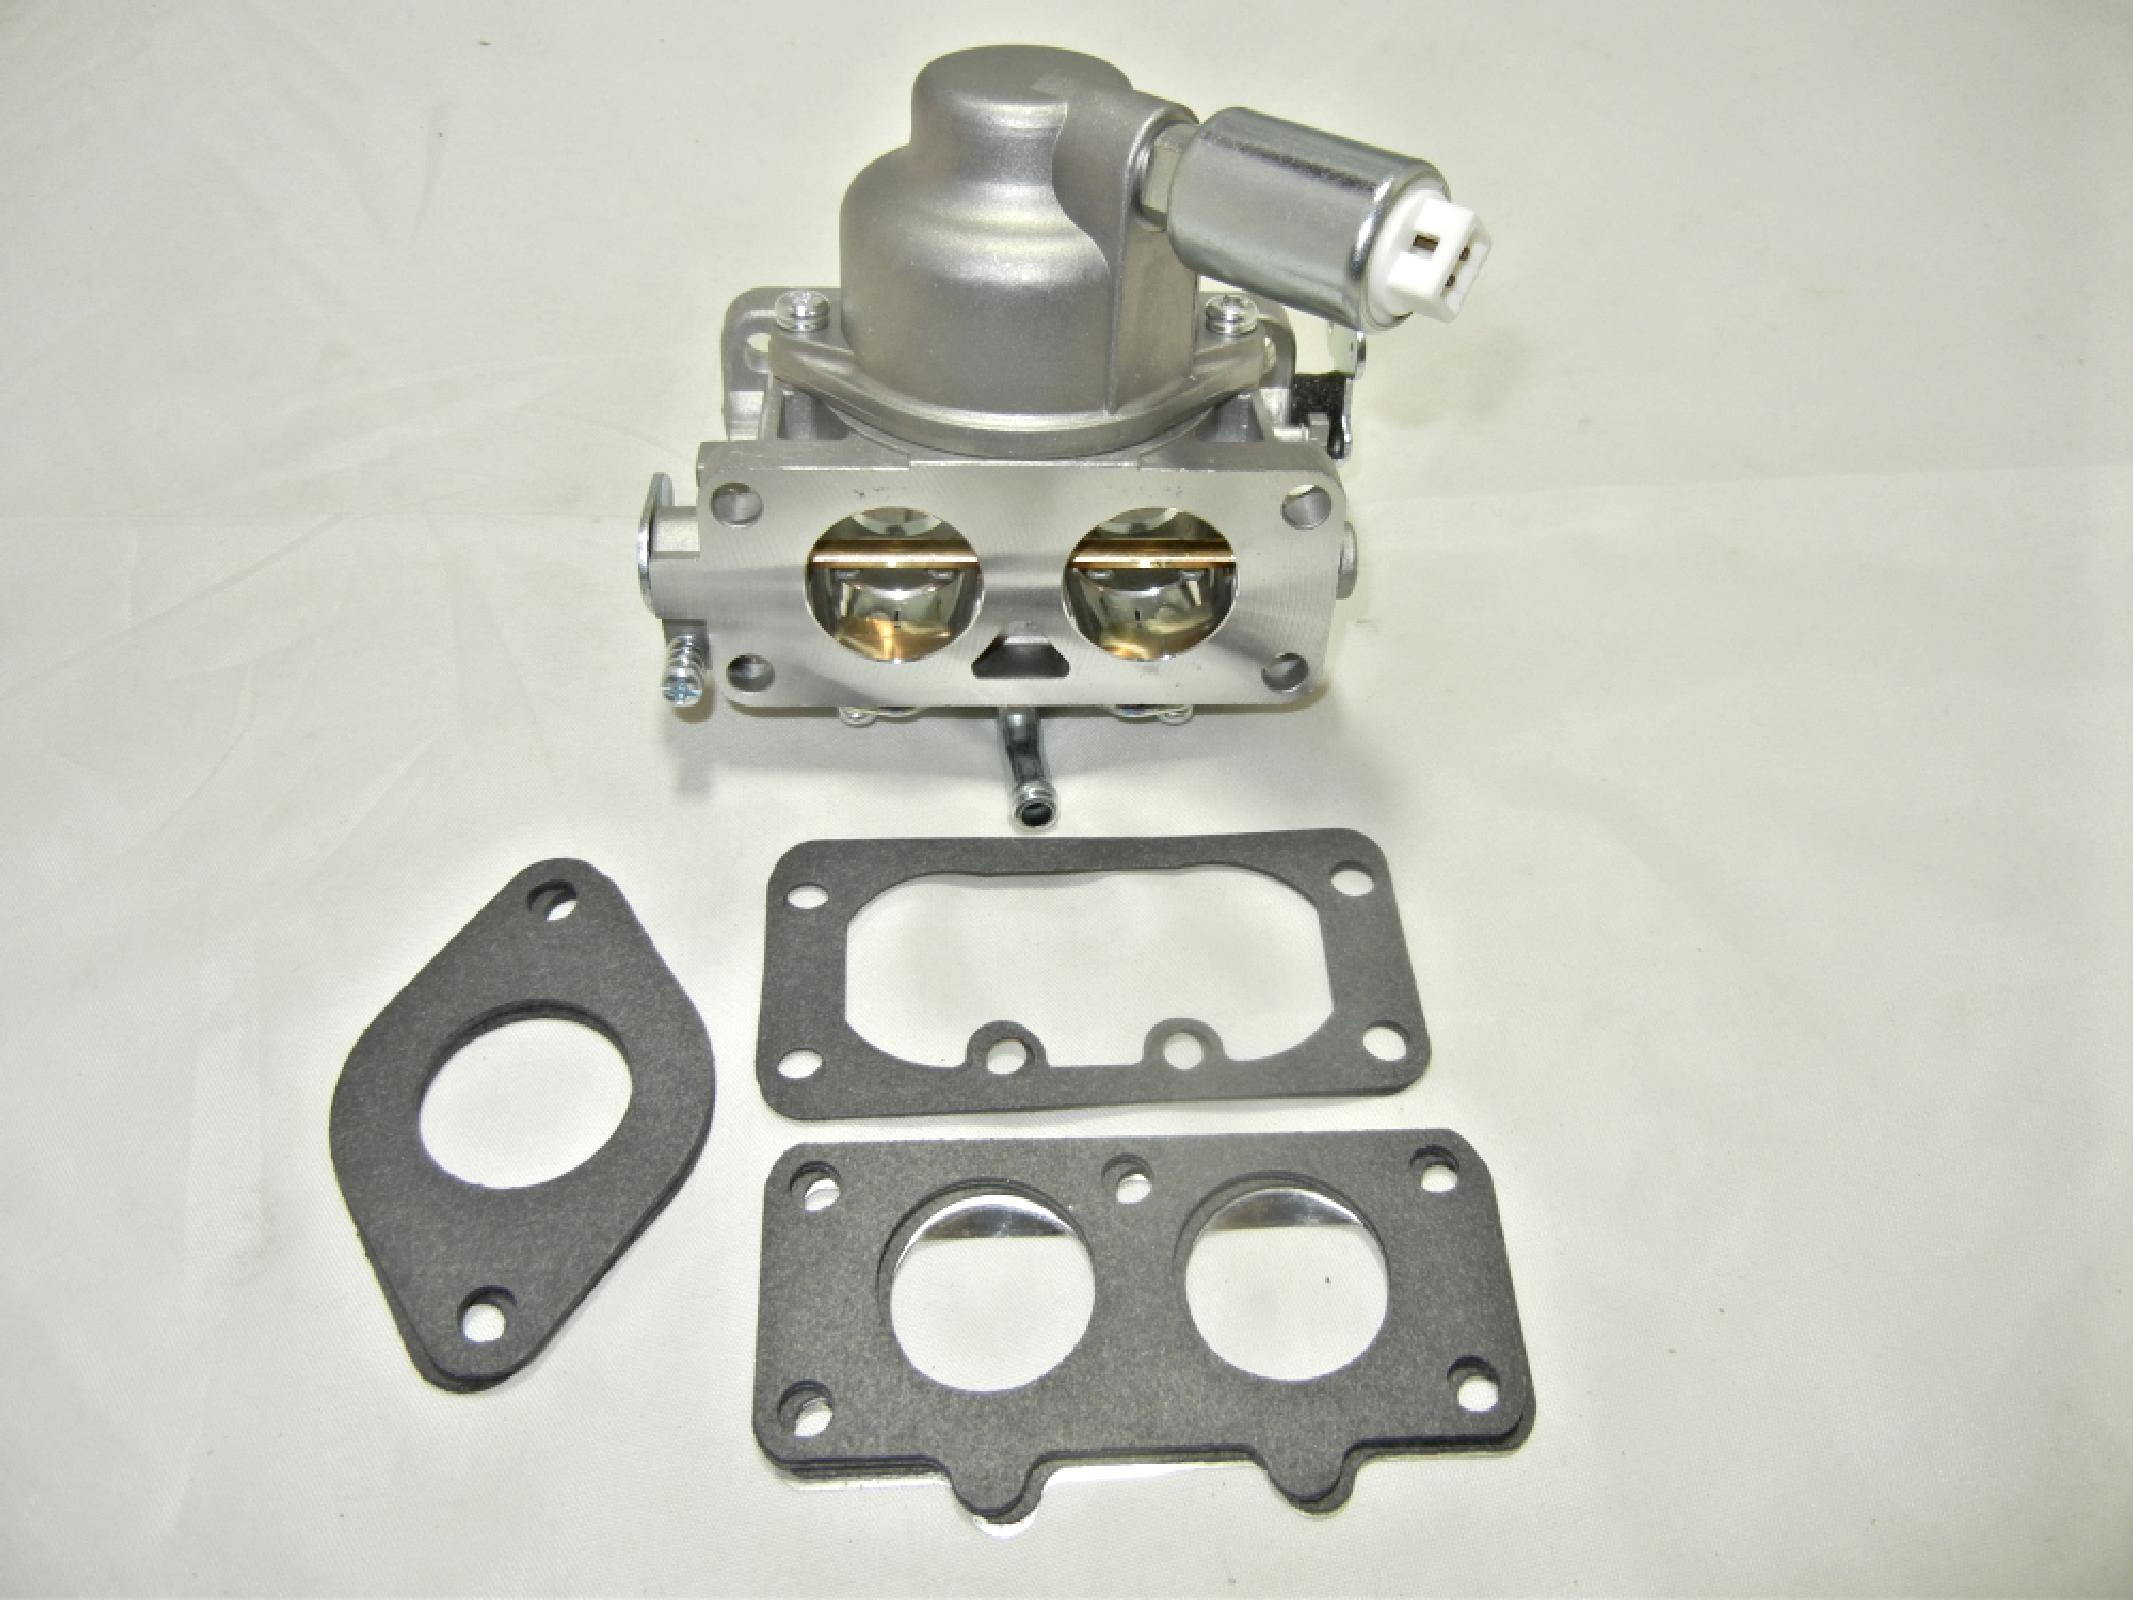 Carburetor replaces Briggs & Stratton 845274 Fits most mo